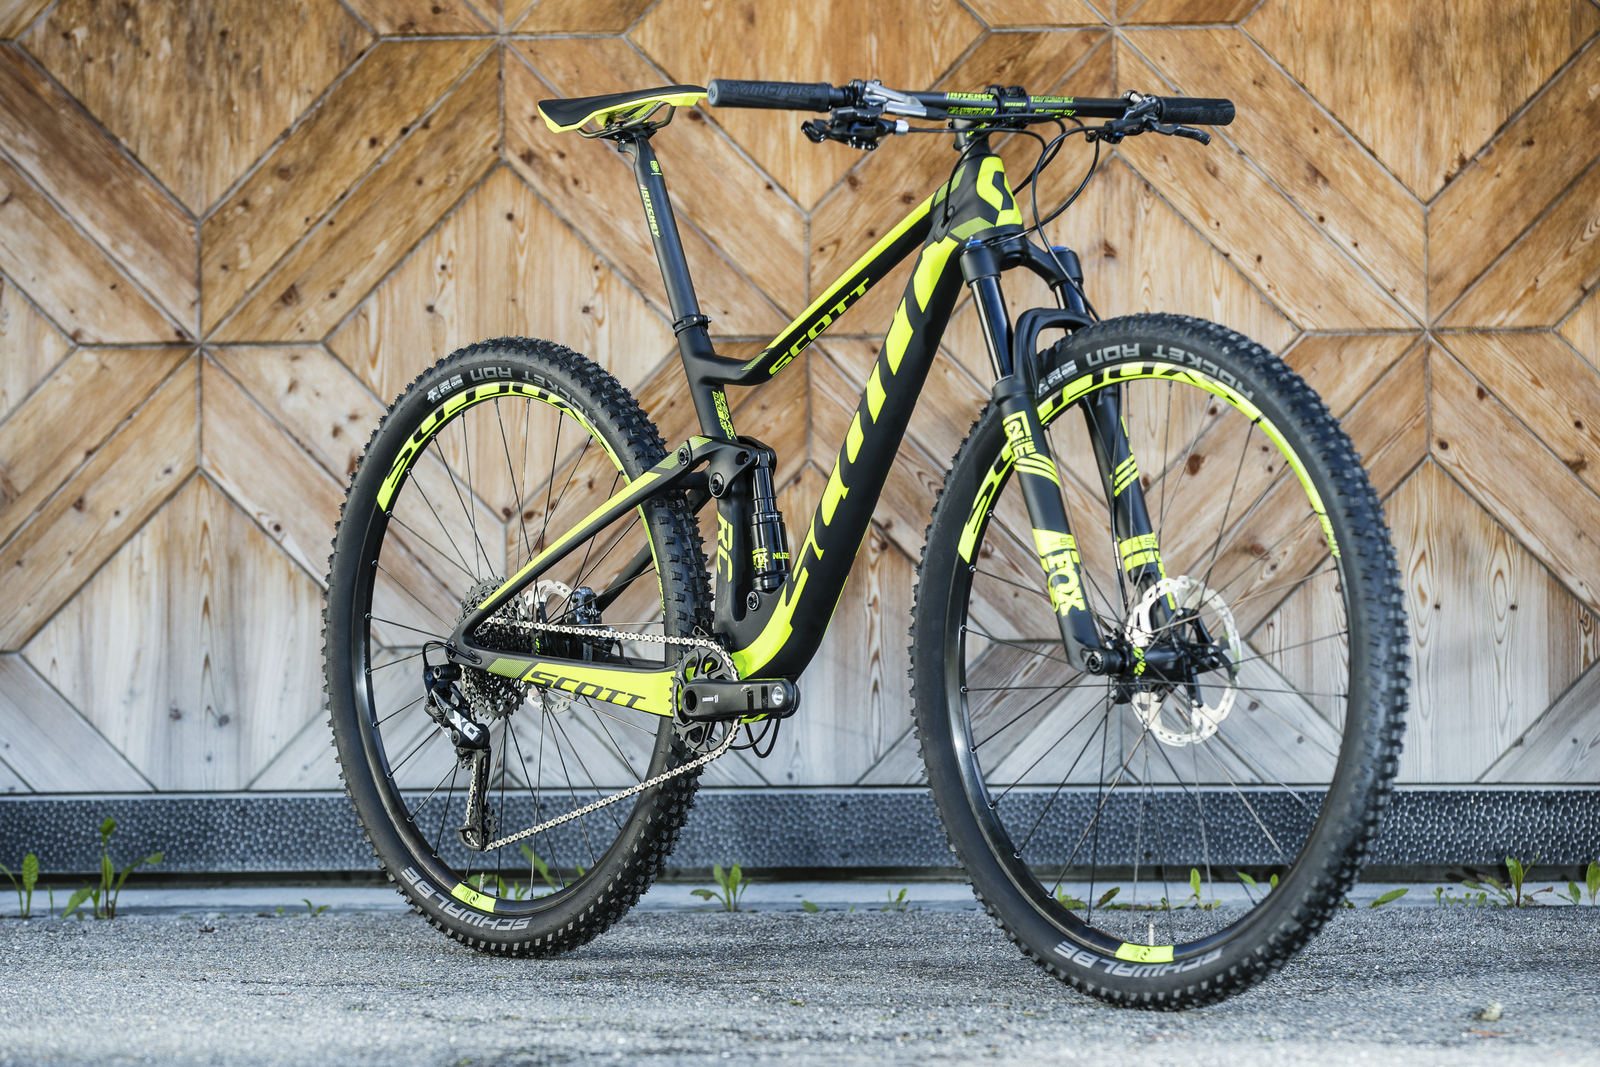 The Spark RC 900 is an XC bike that can pull double duty on more aggressive trails. With 29-inch wheels, a one-by optimized frame, dramatically improved suspension and increased rear-end stiffness, it's the bike that convinced Nino Schurter that a 29er could be the bike that propels him to Olympic gold.